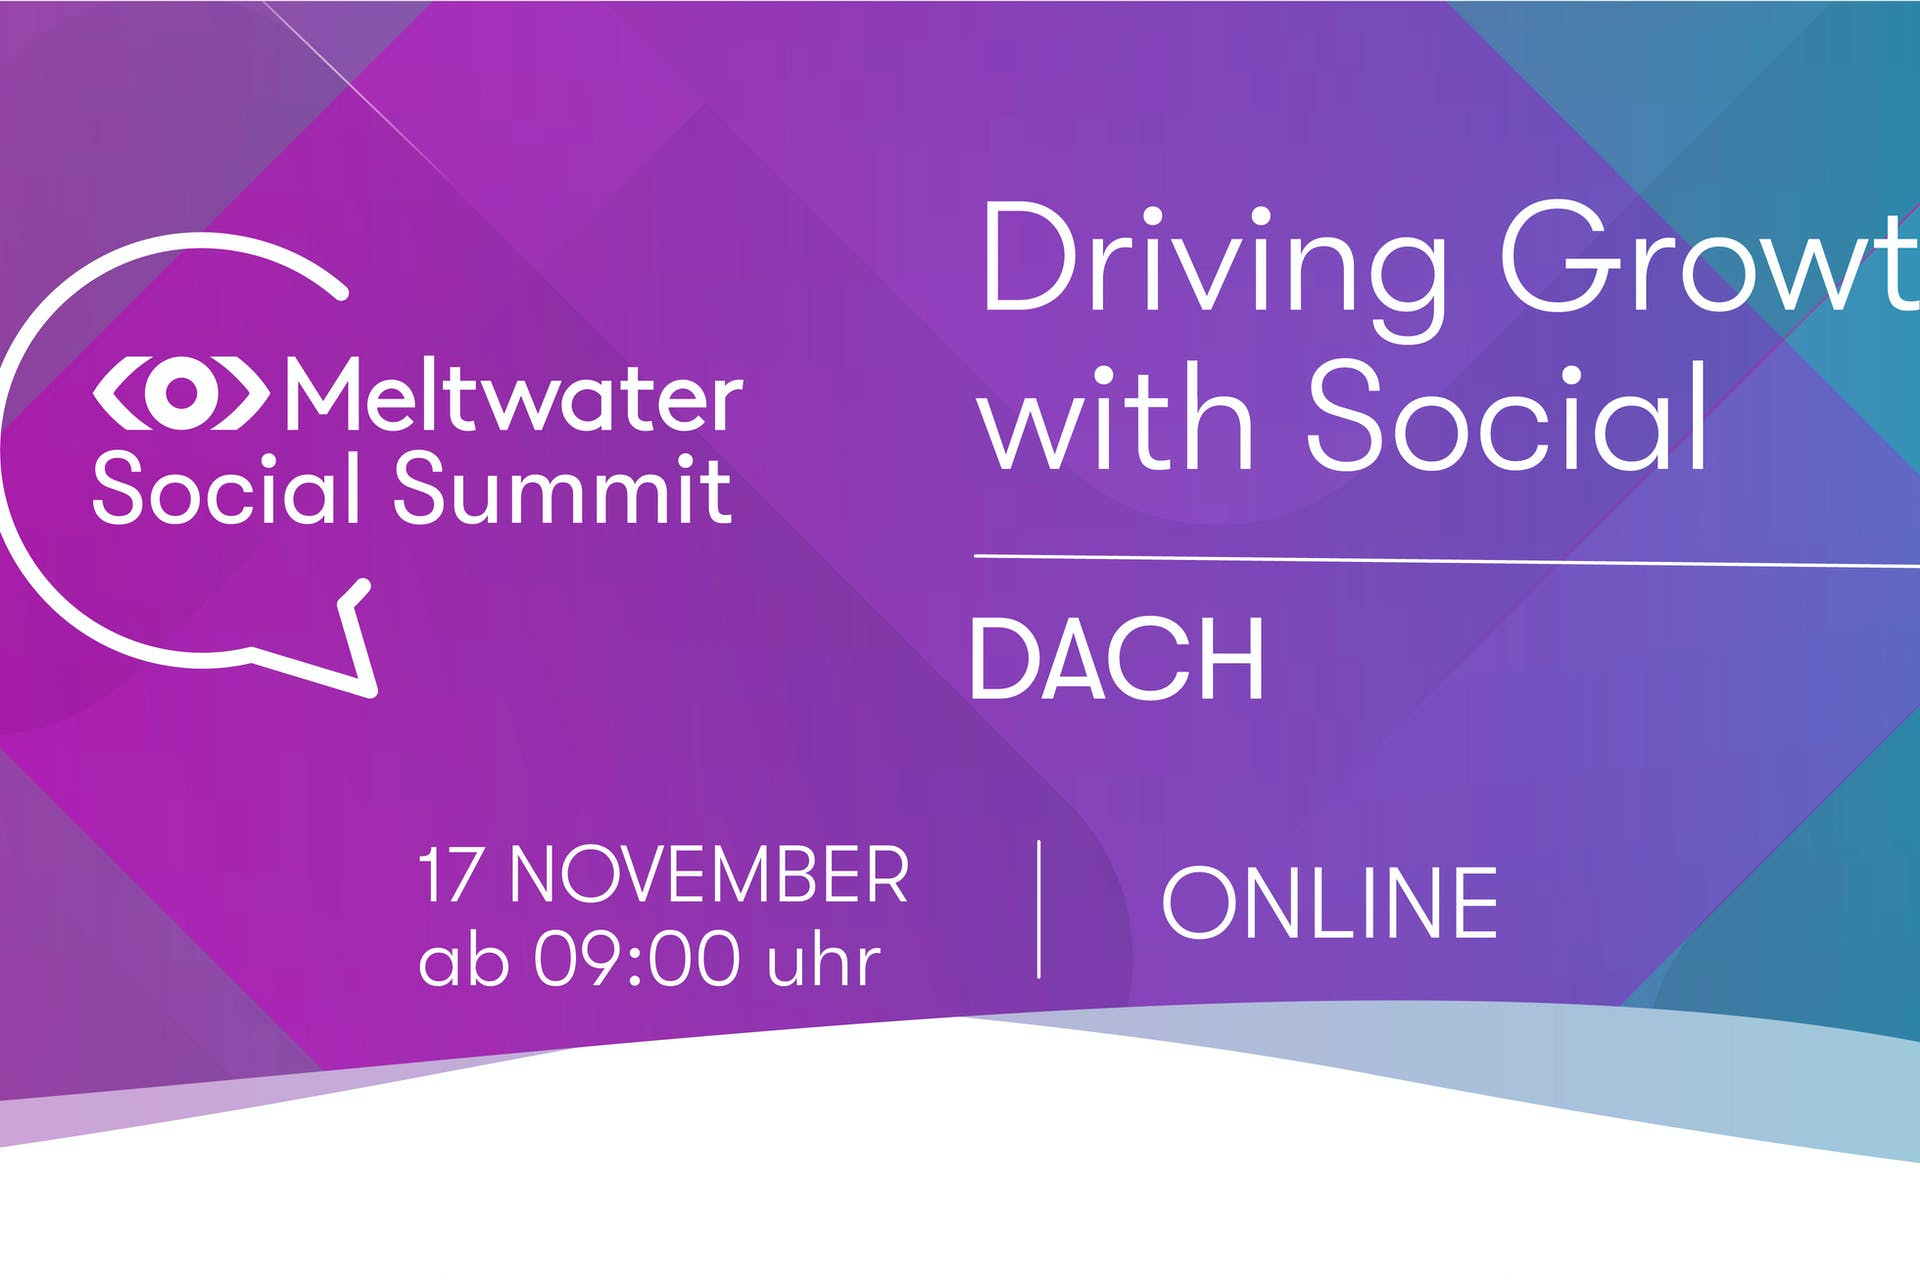 Meltwater Social Summit Driving Growth with Social DACH Banner